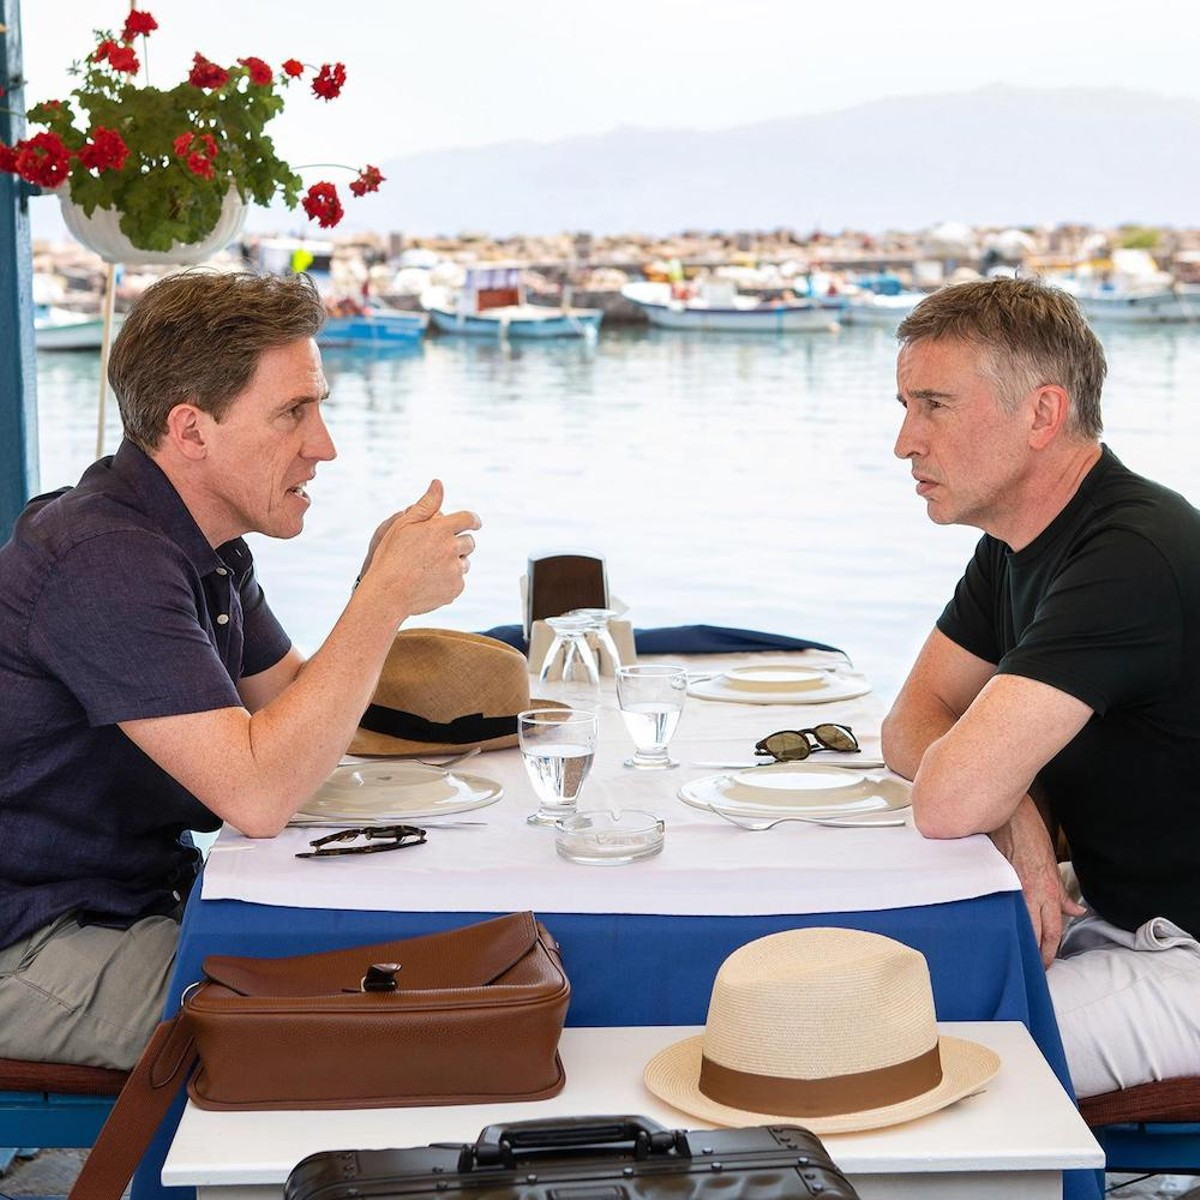 Rob Brydon and Steve Coogan in 'The Trip to Greece'